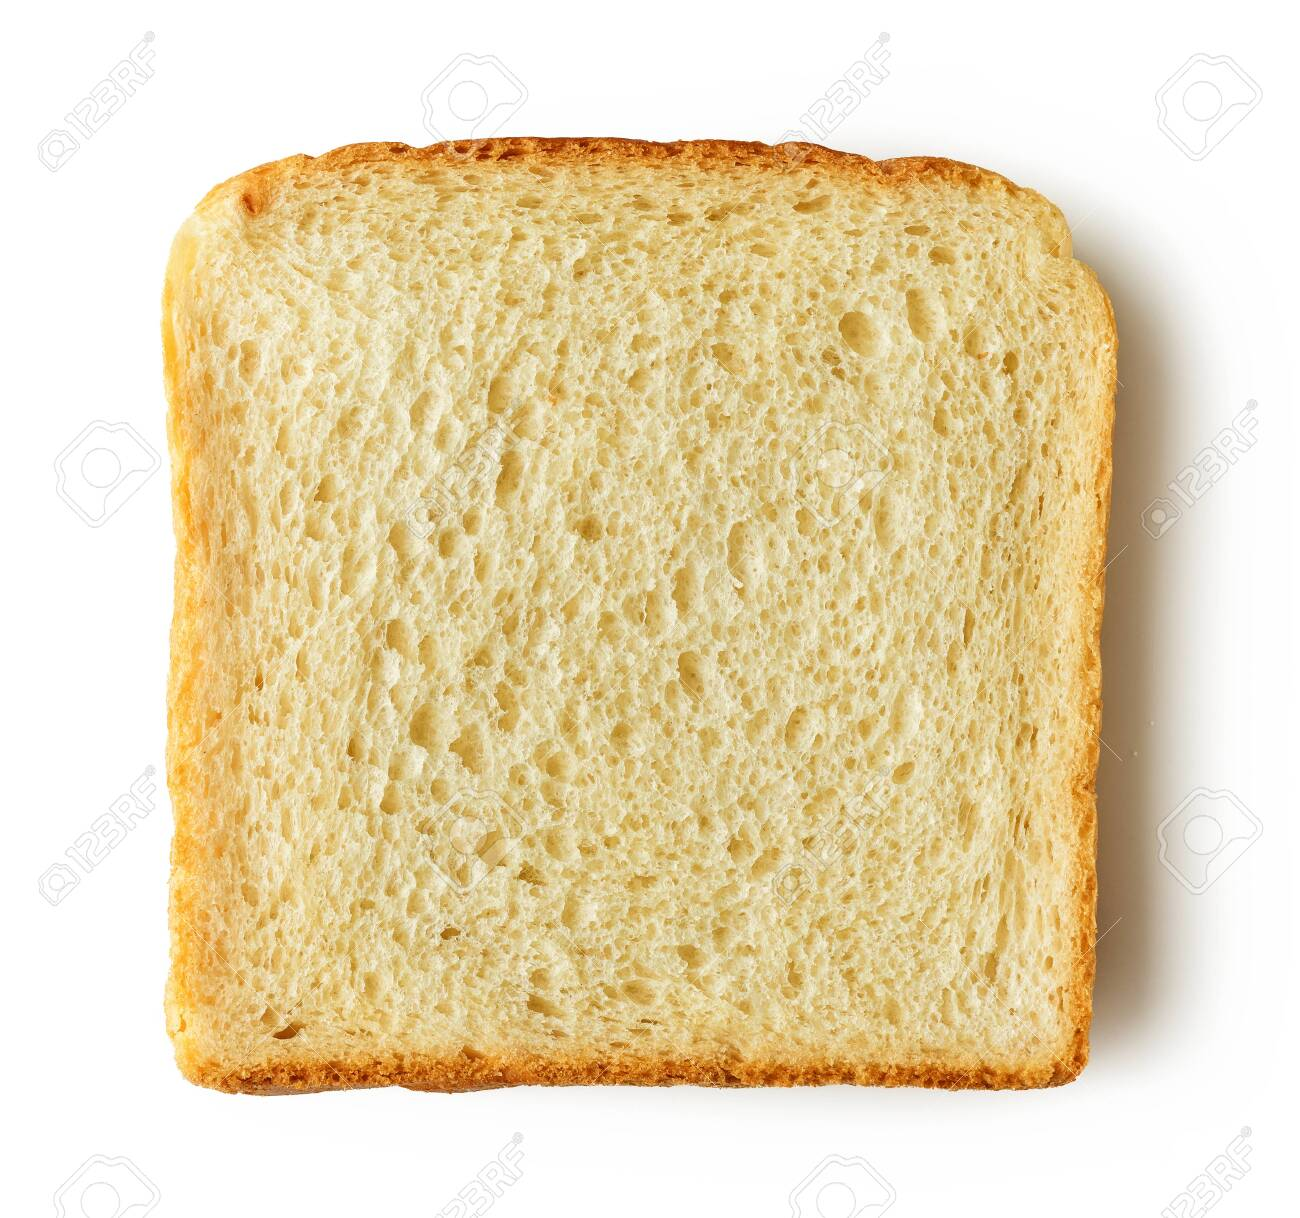 Slice of bread isolated on white - 141673739